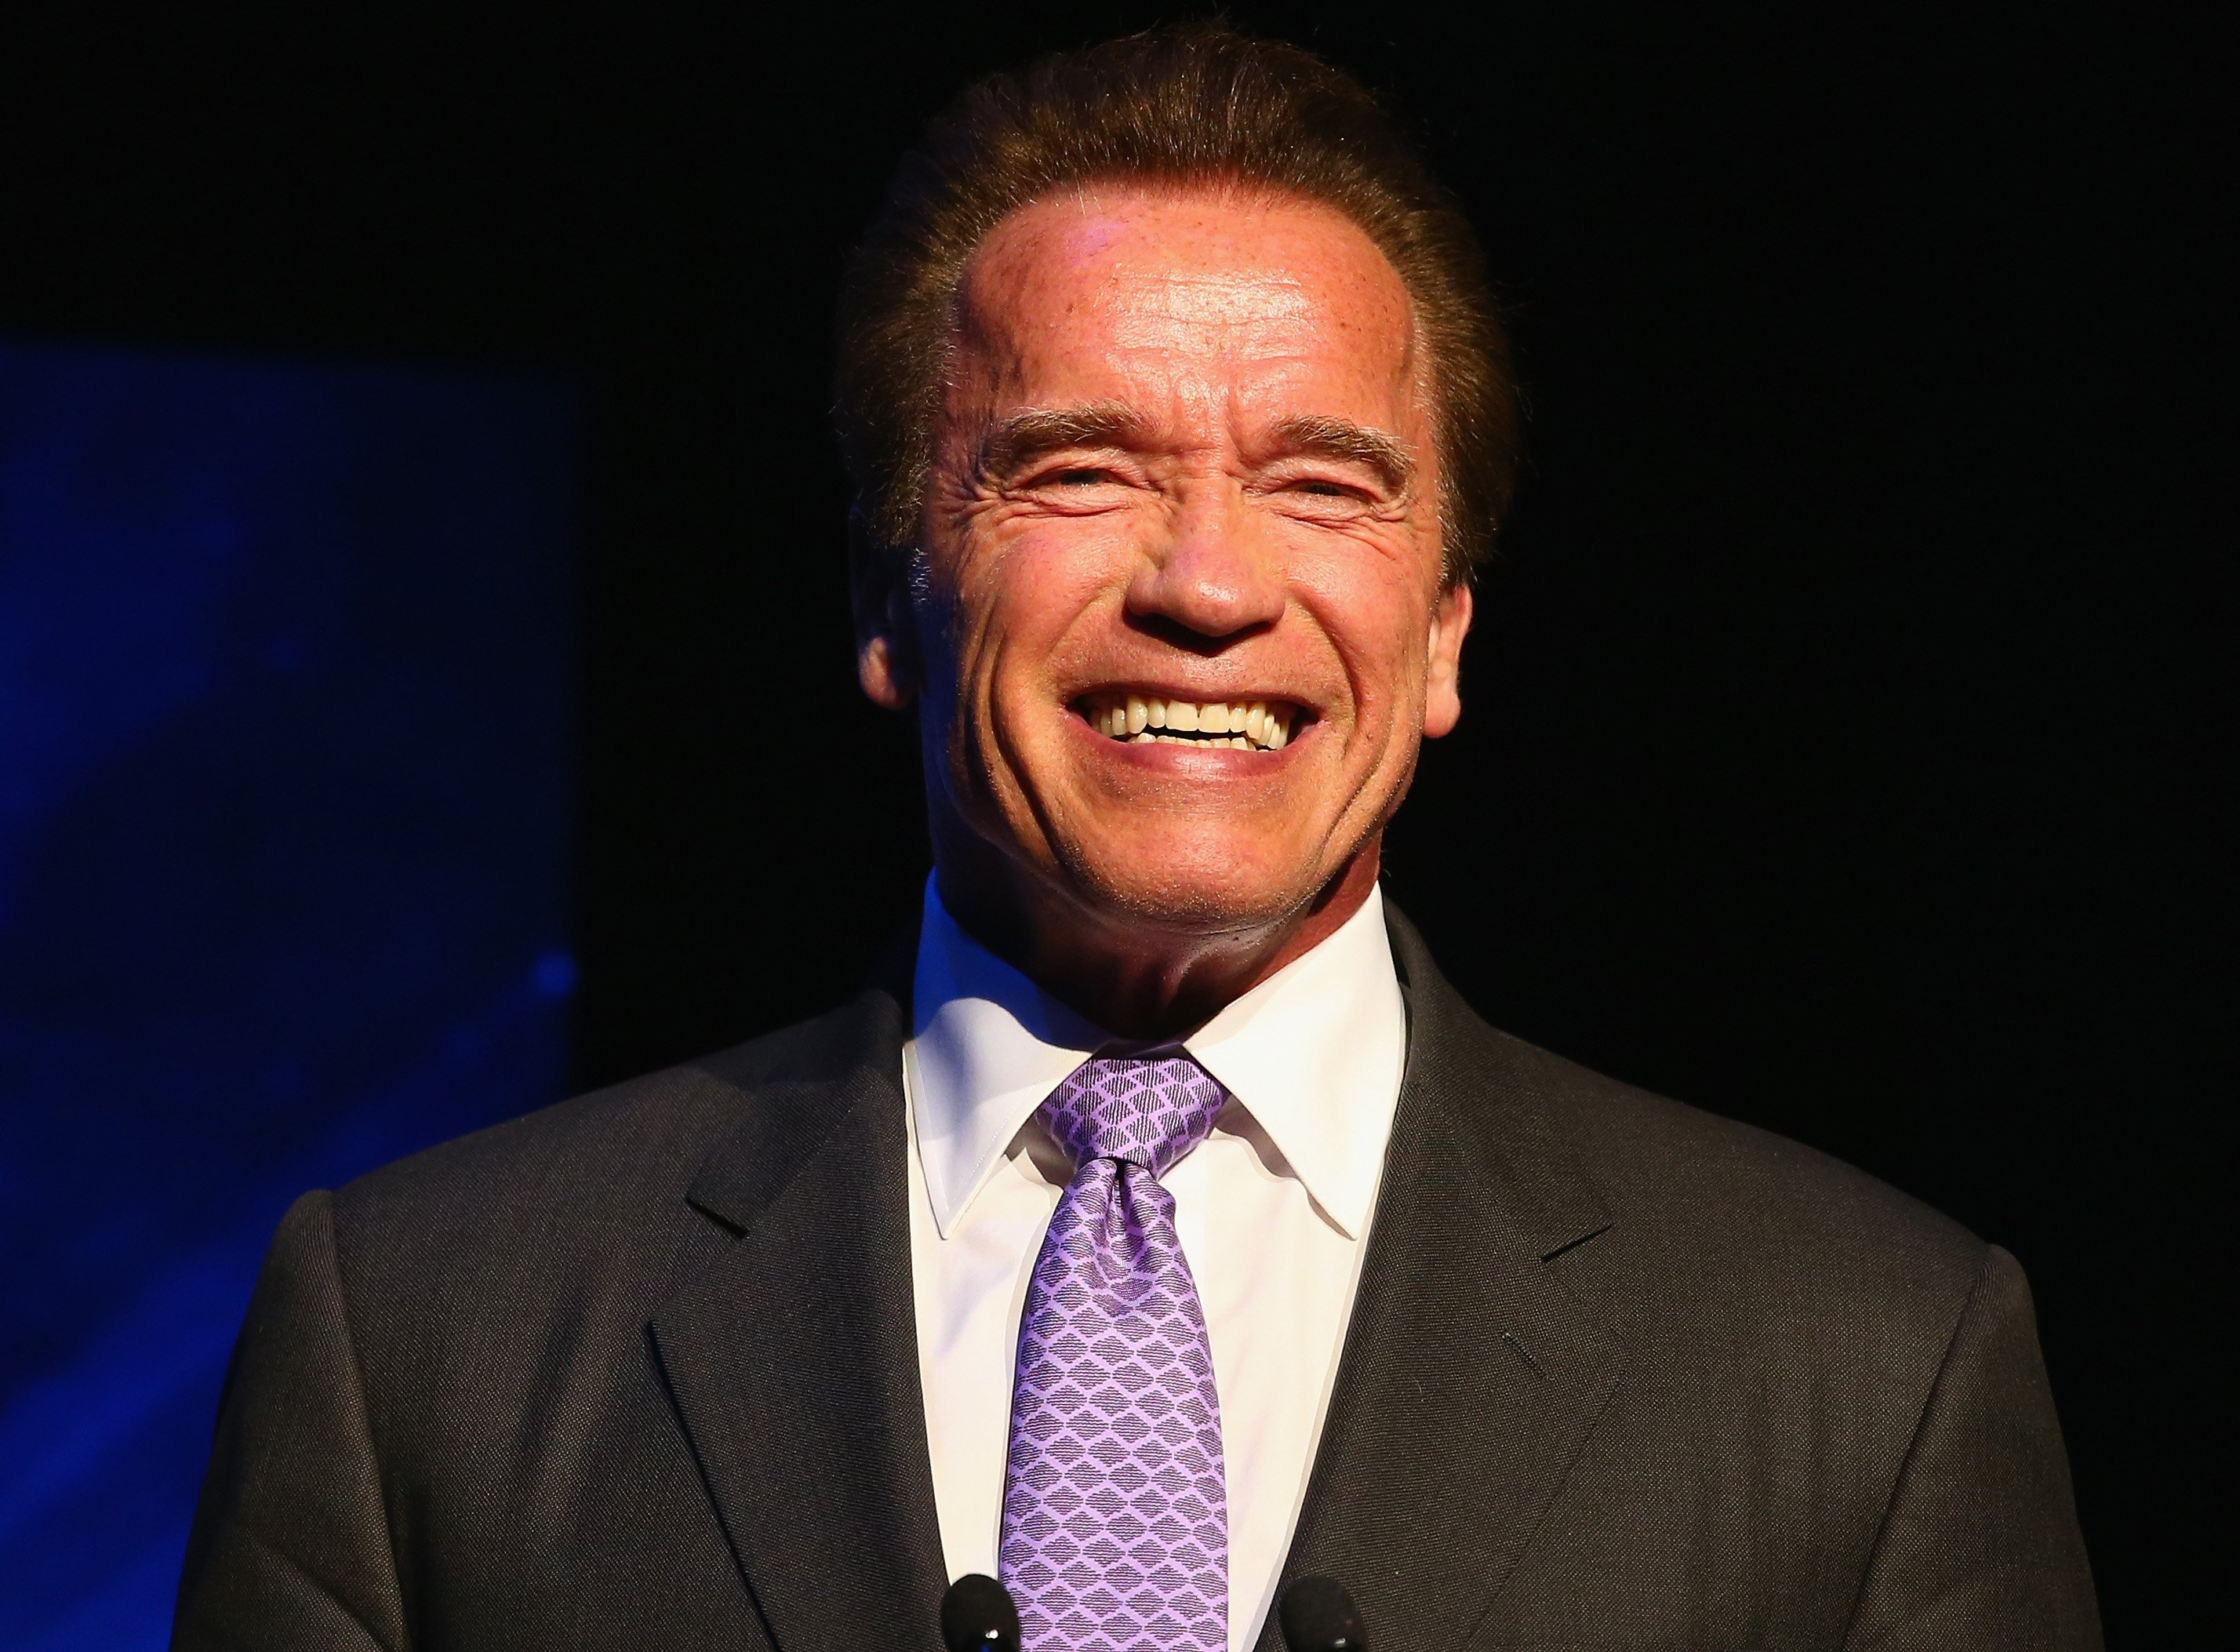 Arnold Schwarzenegger on March 14, 2015 in Melbourne, Australia | Photo: Getty Images